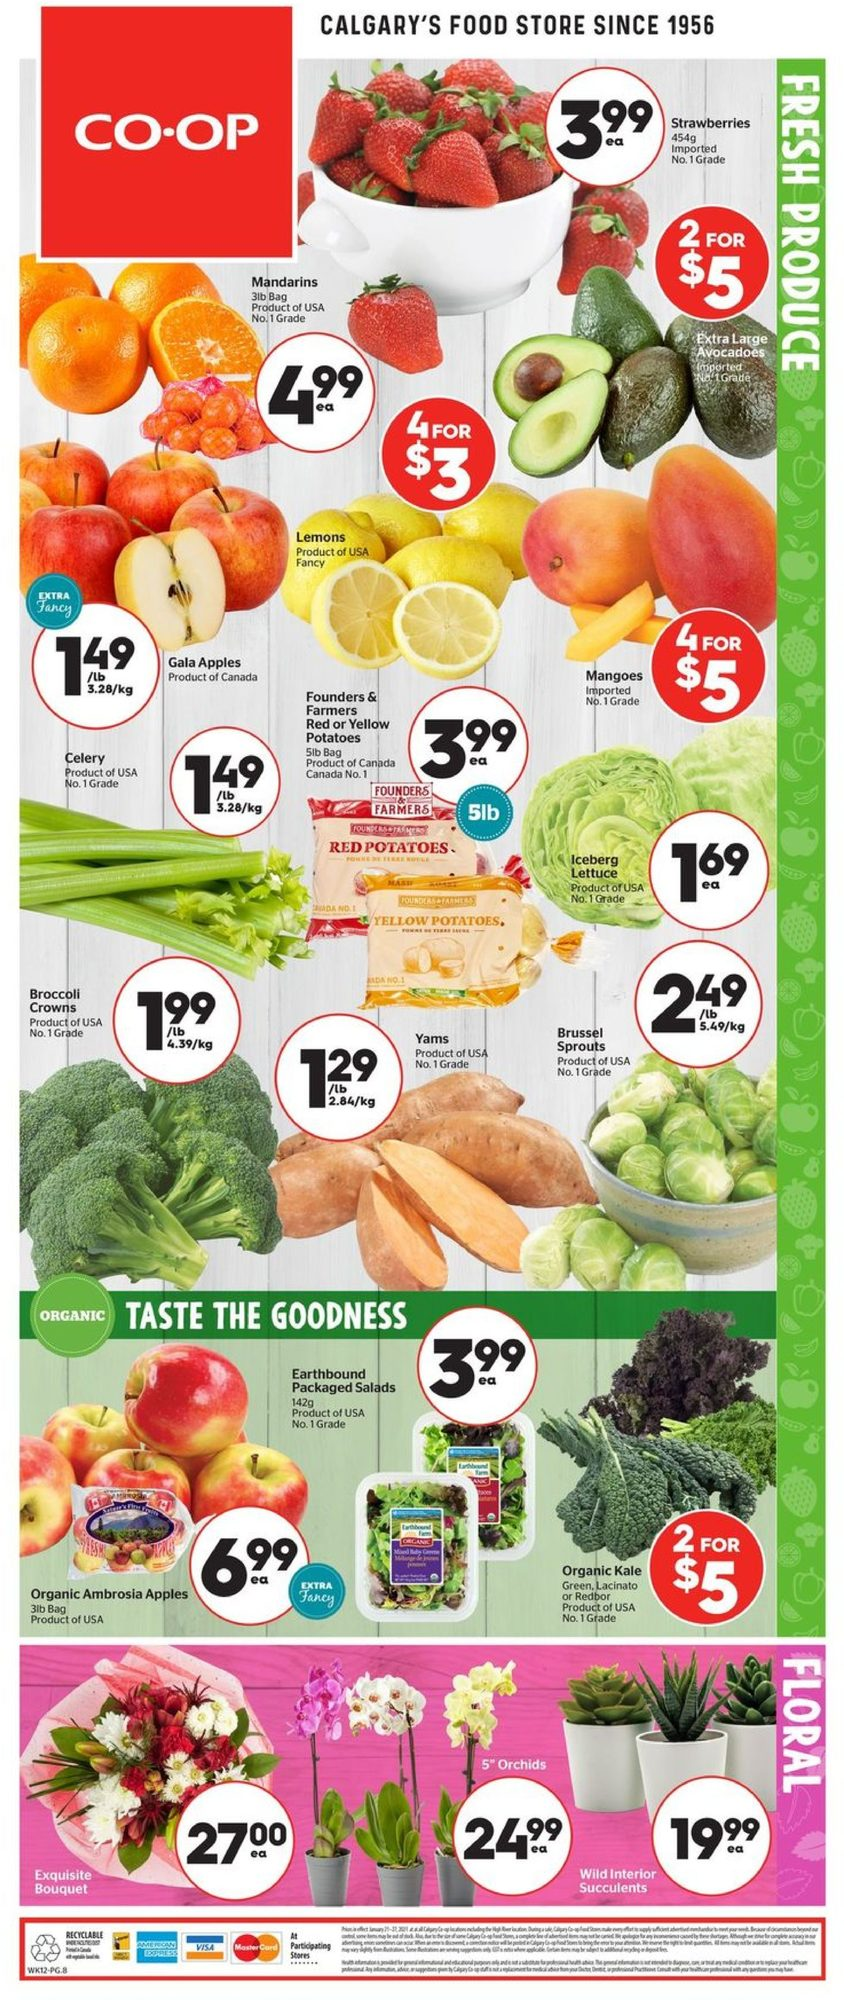 Calgary Co-op - Weekly Flyer Specials - Page 8